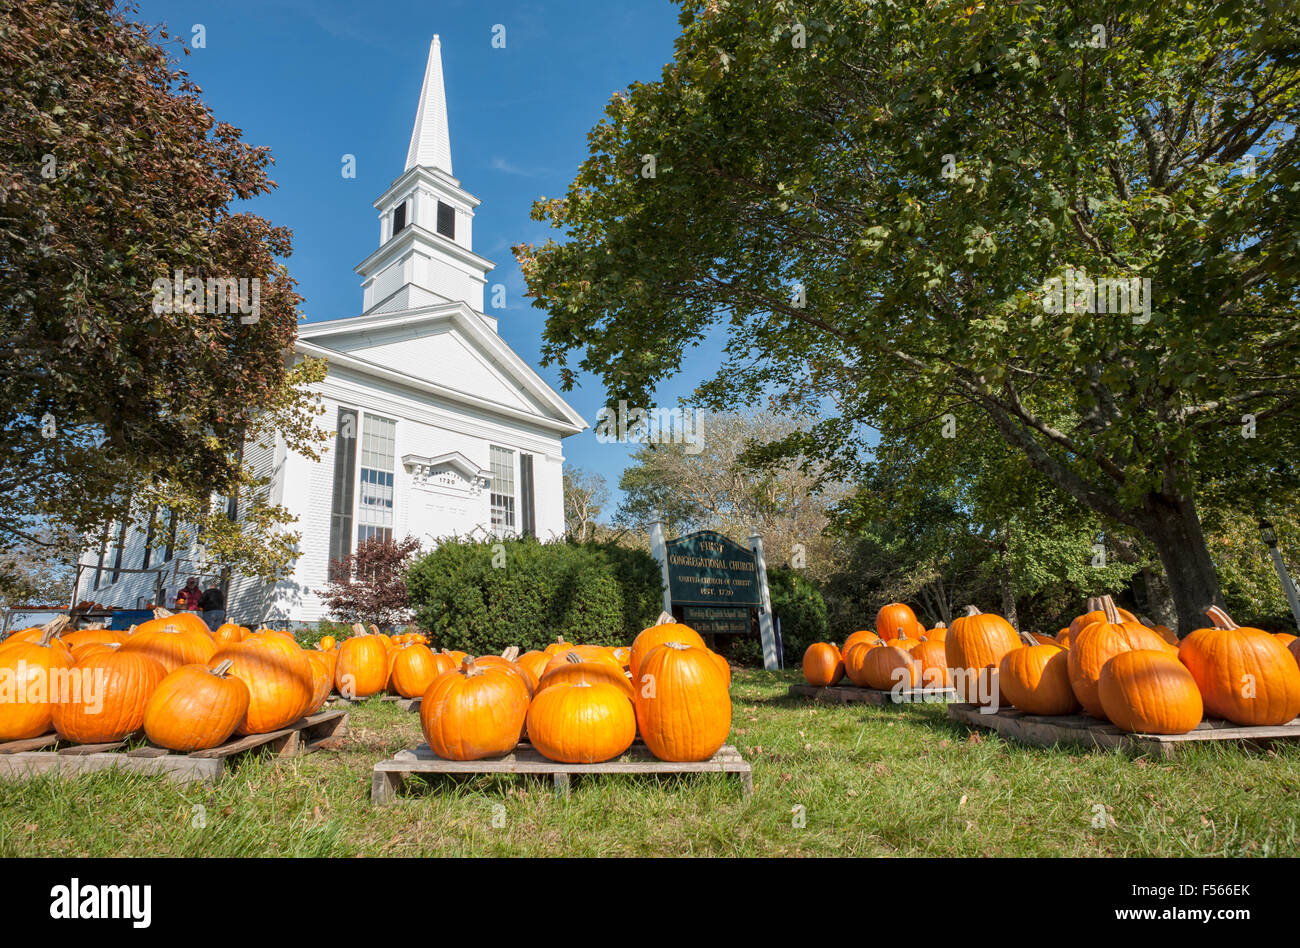 Pumpkin Patch pumpkins for sale at the First Congregational Church United Church of Christ Cape Cod Chatham Massachusetts Stock Photo